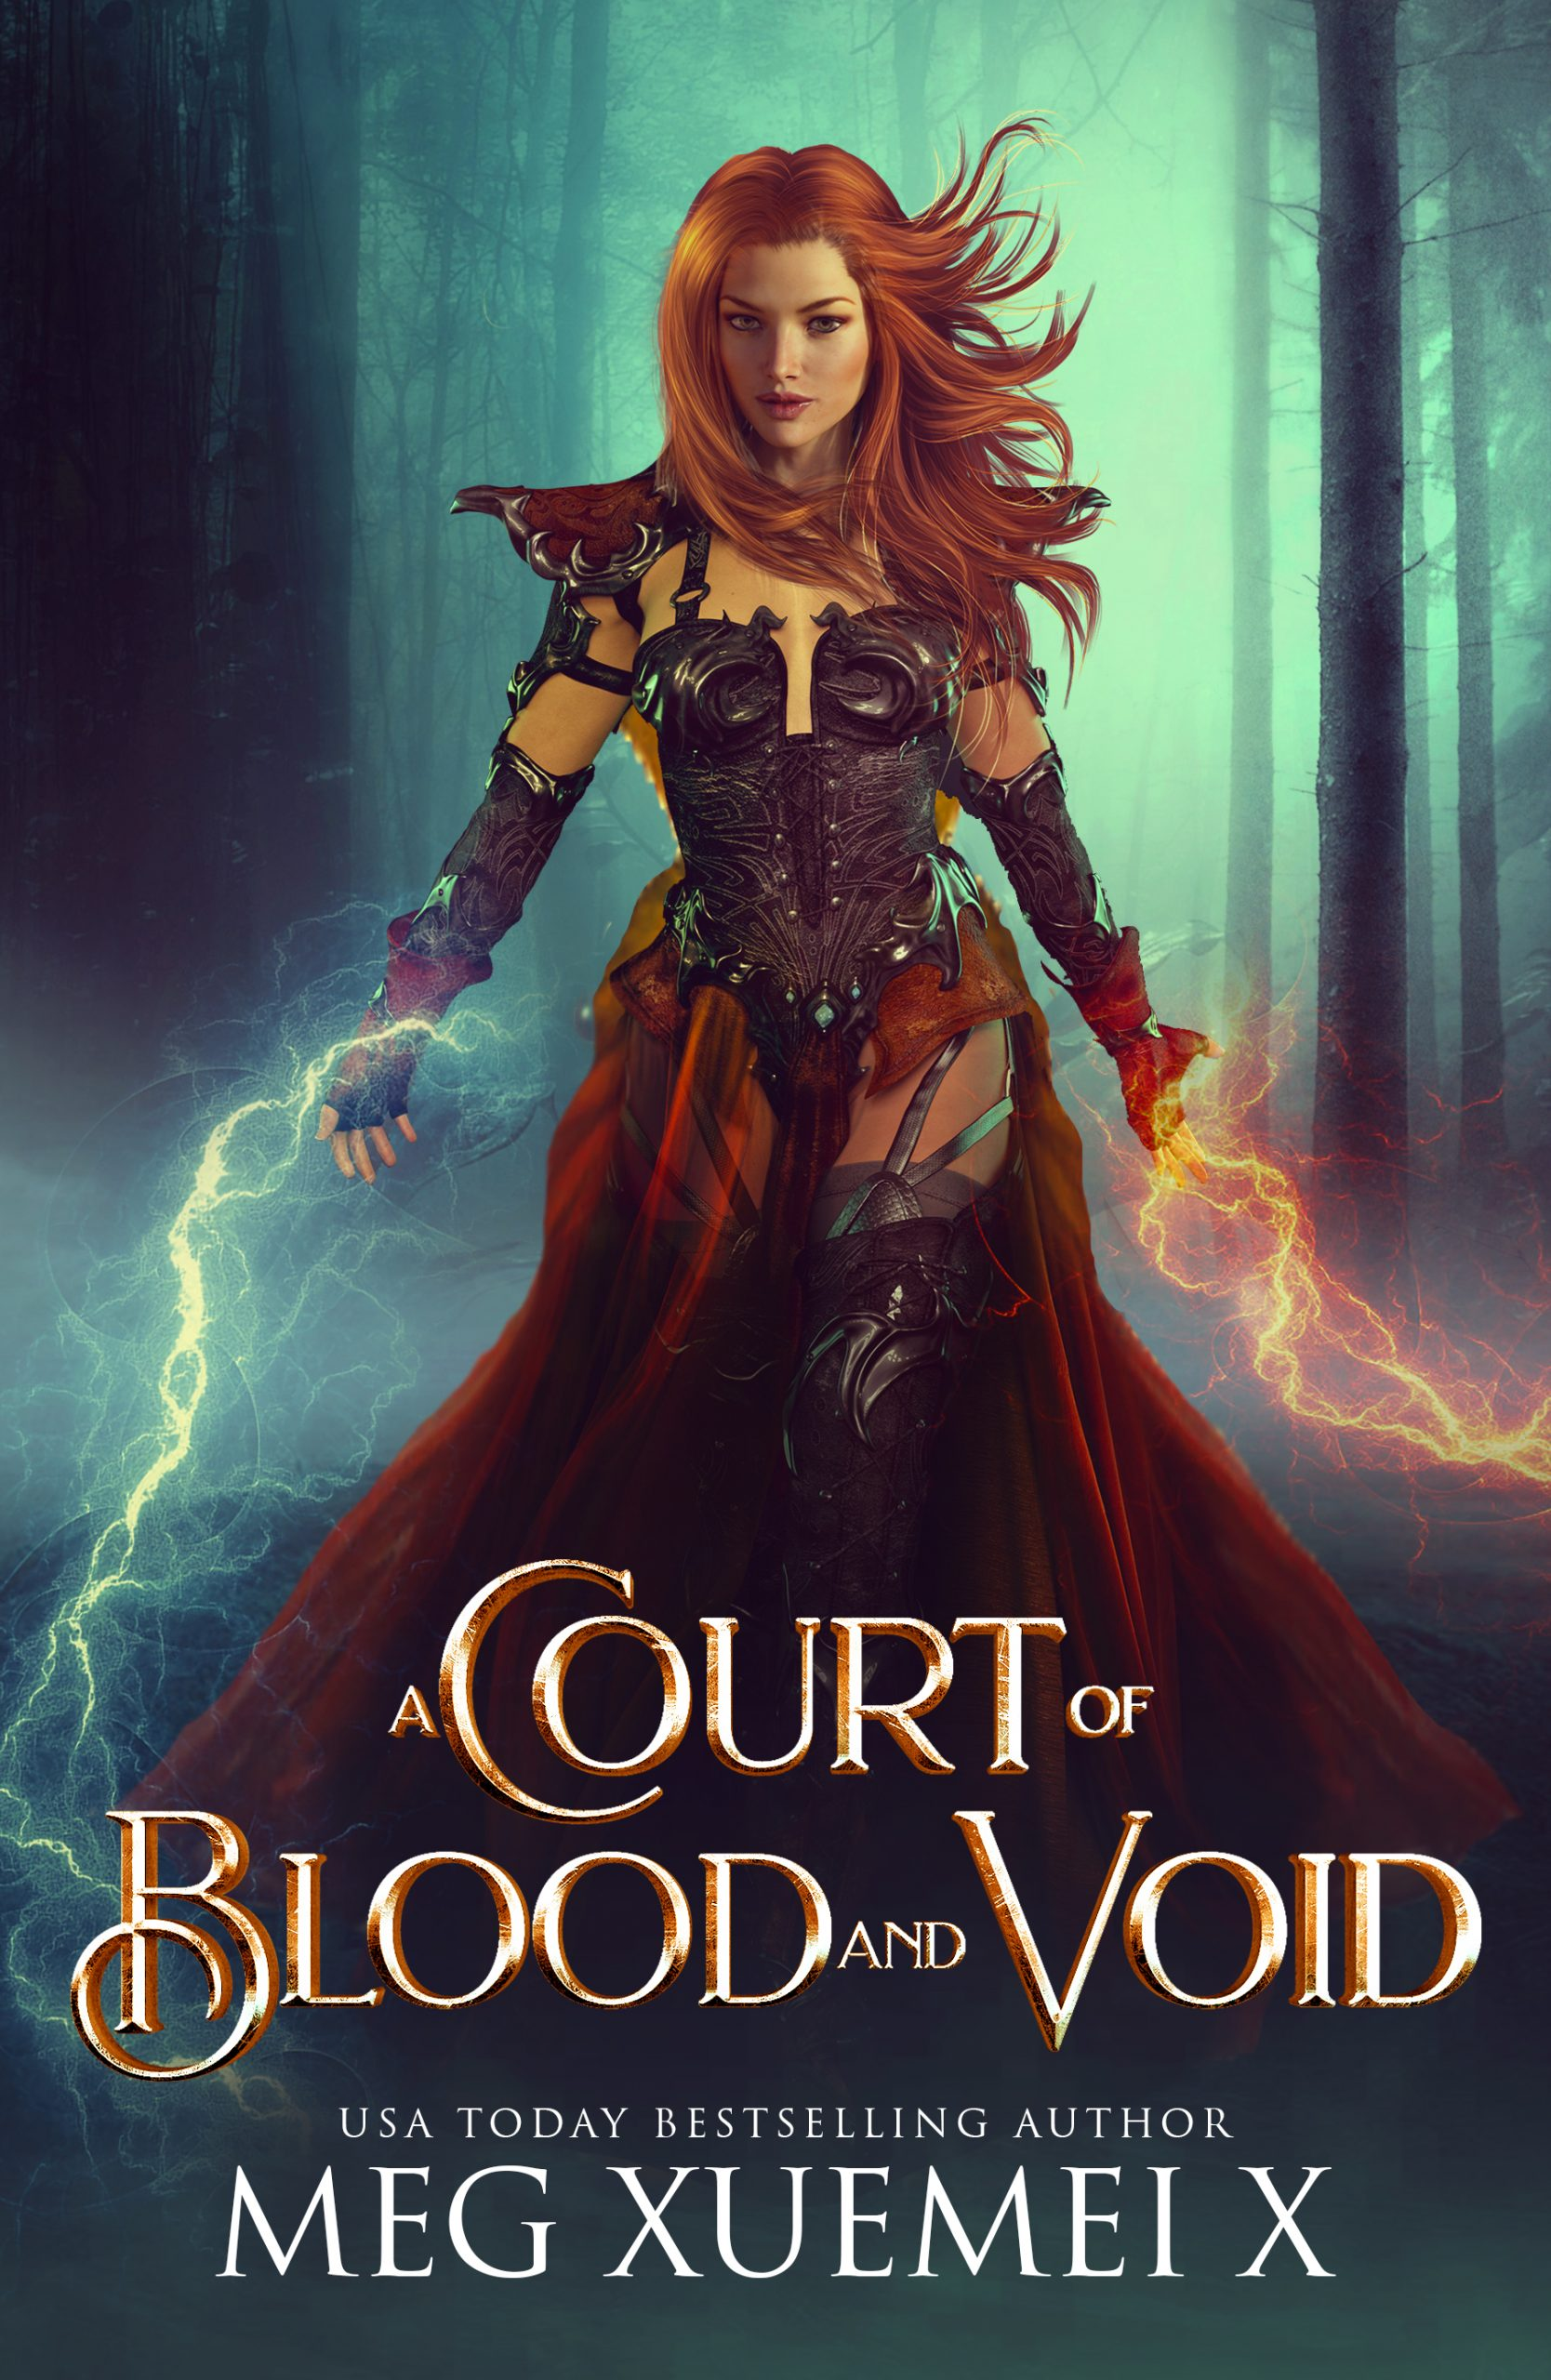 A Court of Blood and Void